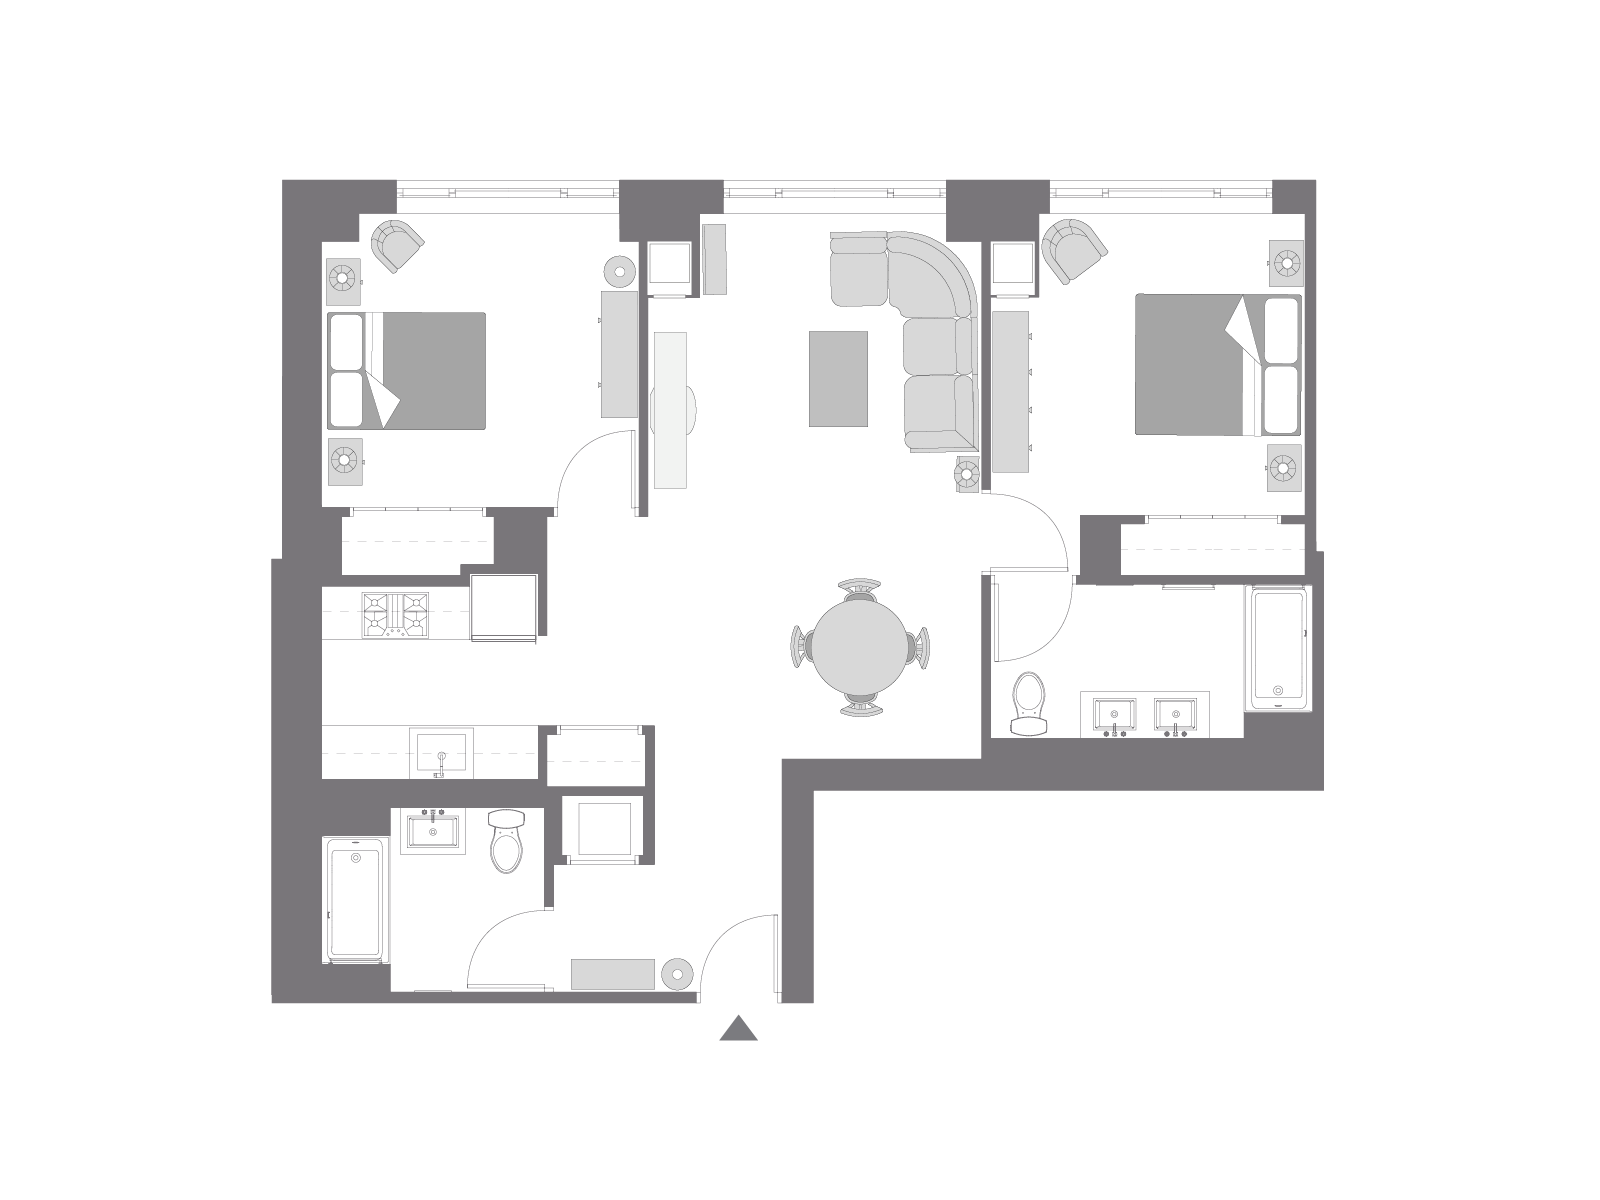 Floor plan with furniture